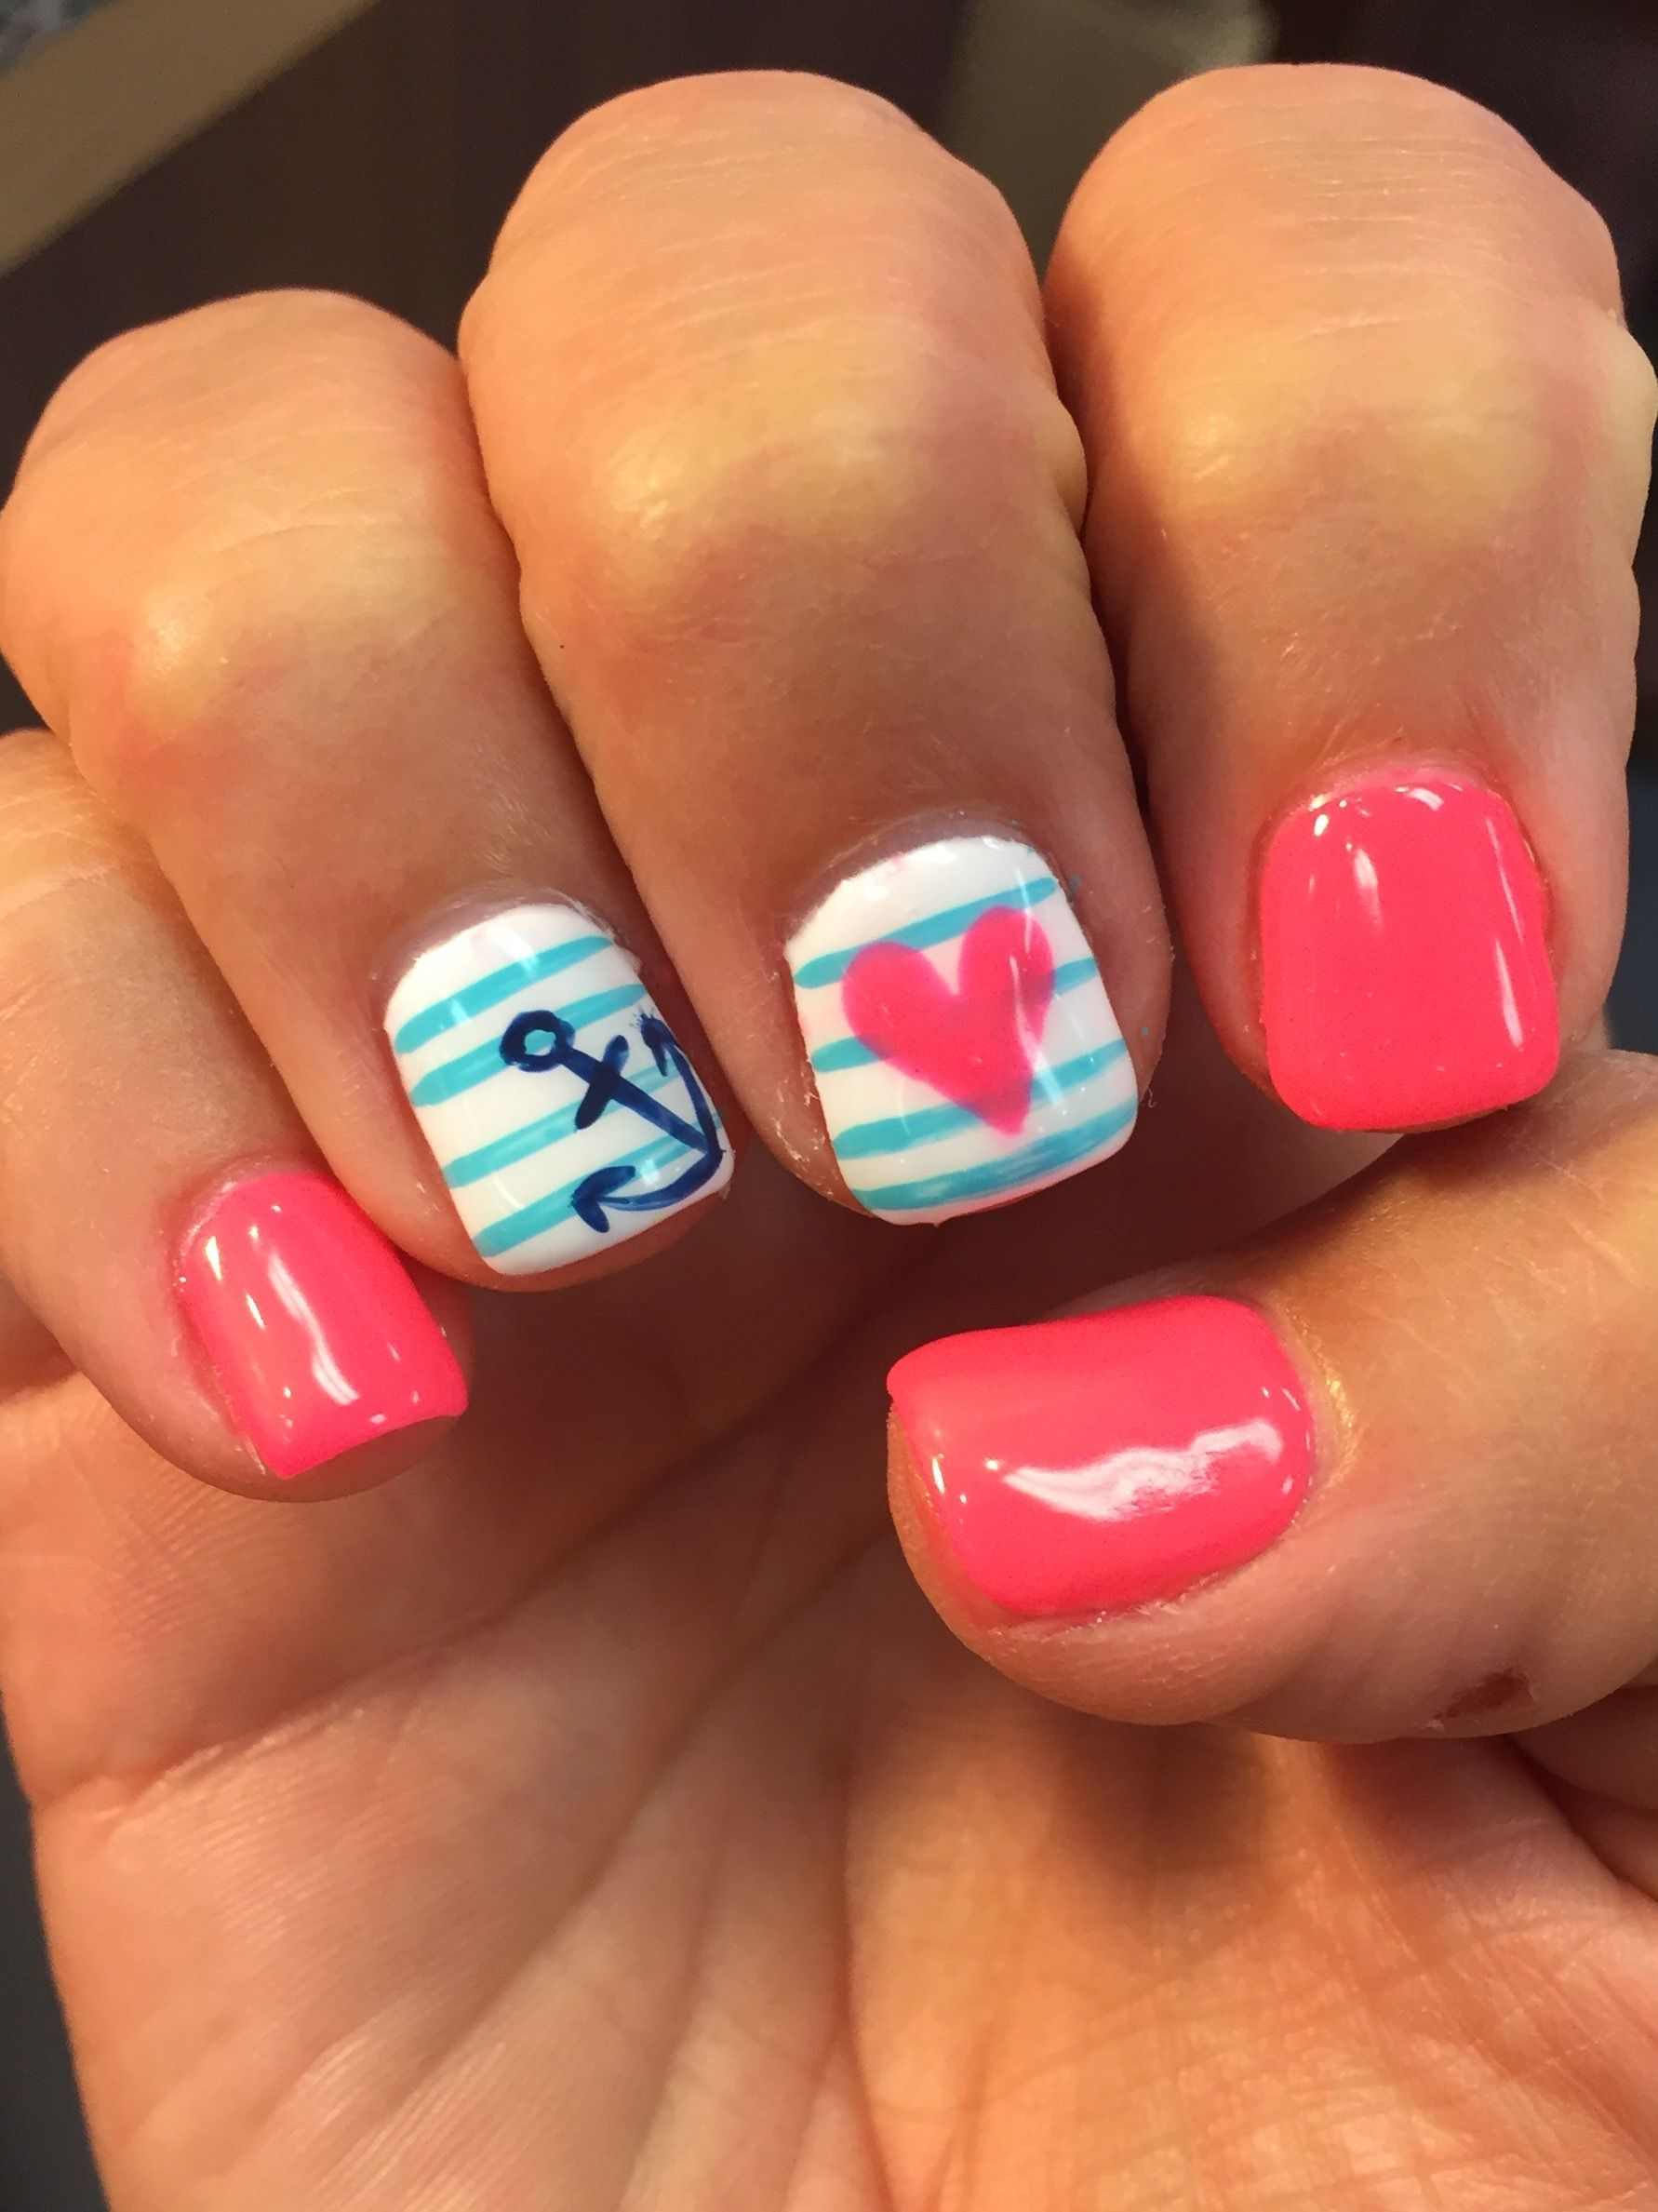 Summer nails design anchor pink June gel nail mani heart | Nails by ...